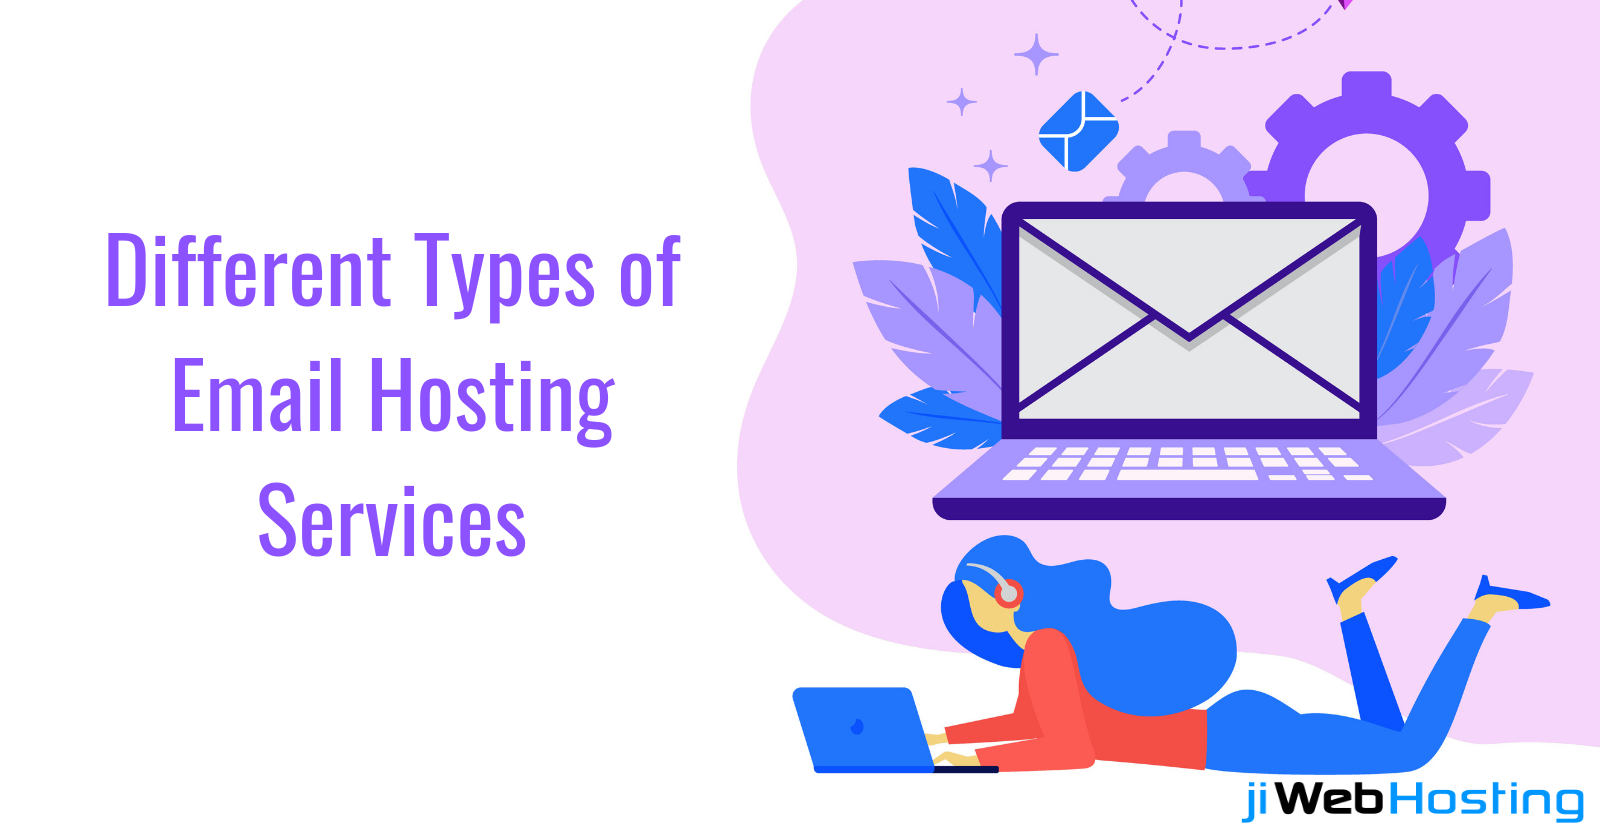 Different Types of Email Hosting Services